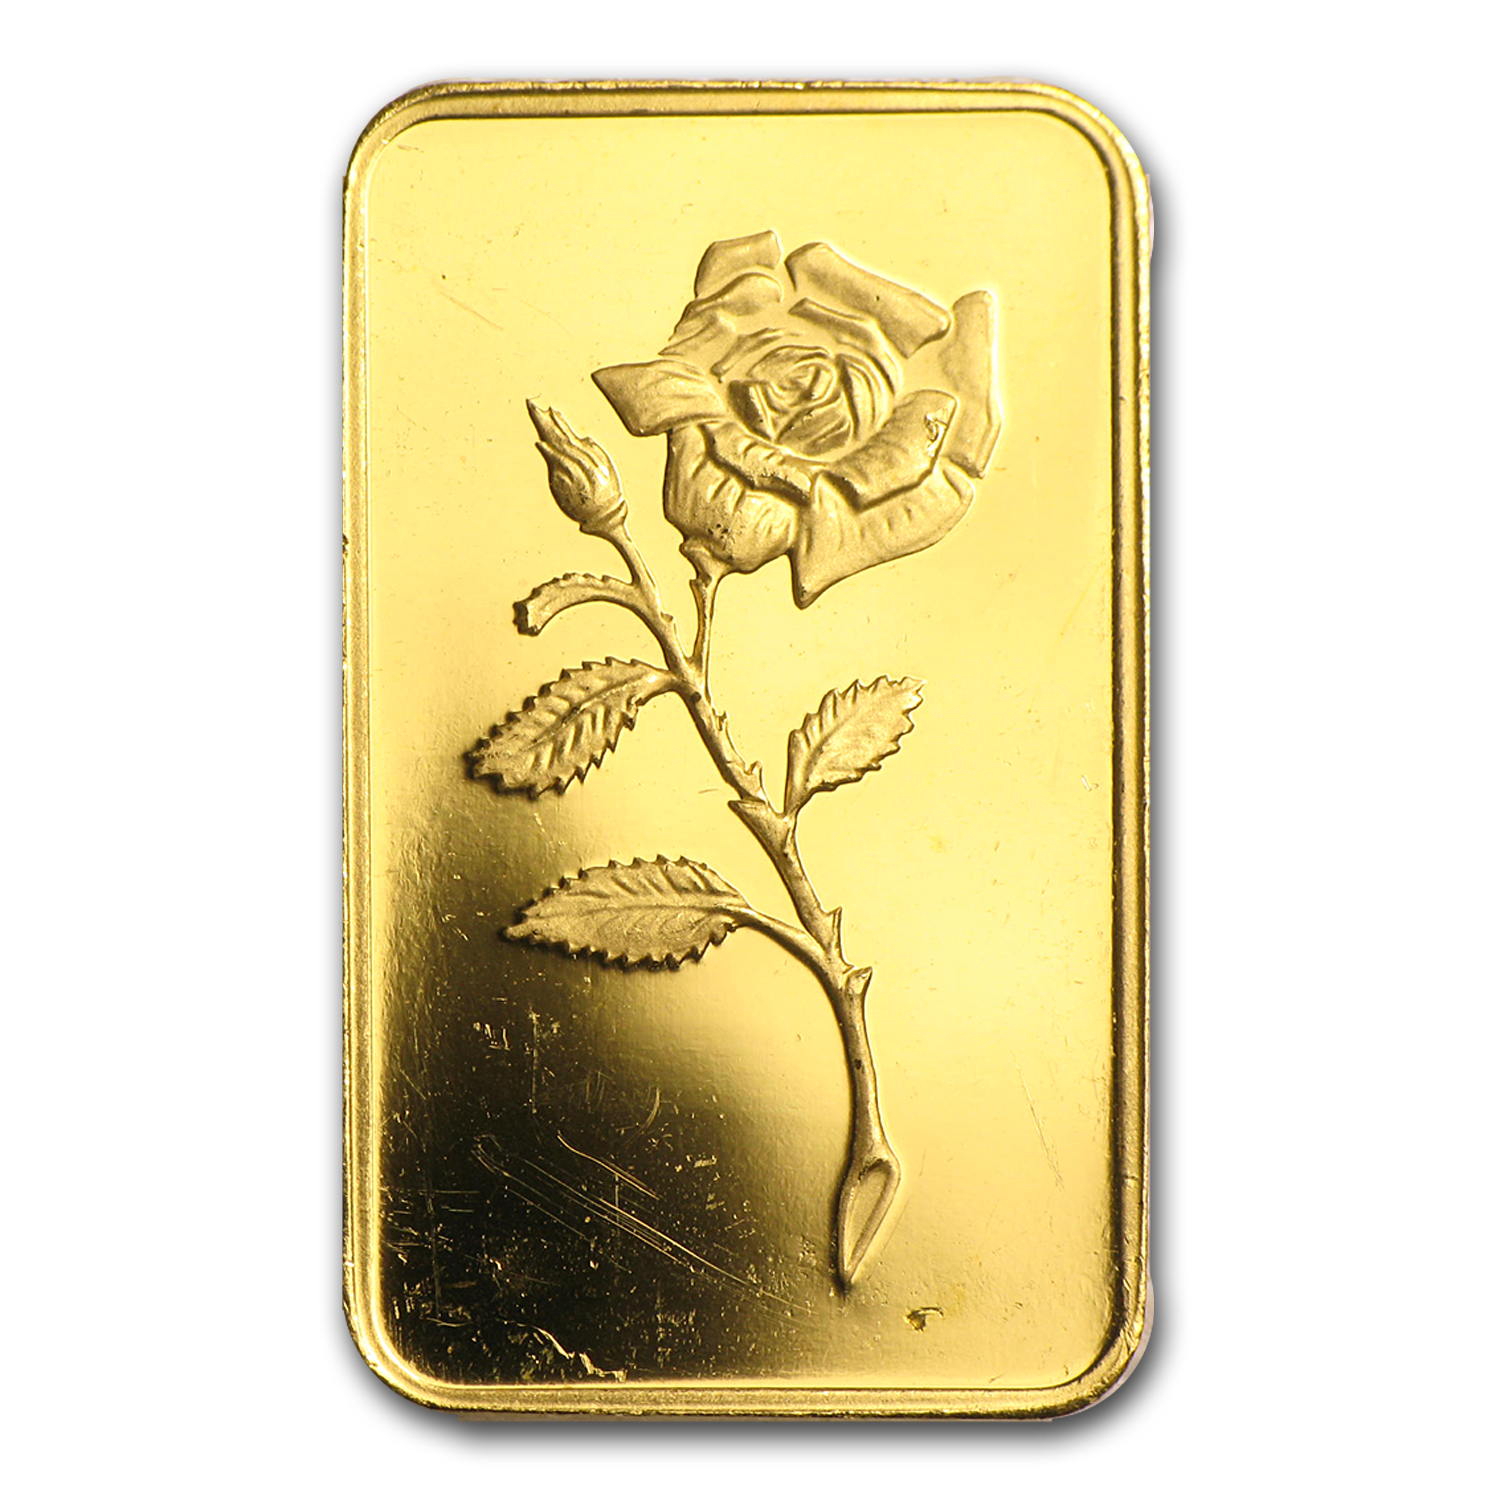 5 gram Gold Bar - Credit Suisse Rose